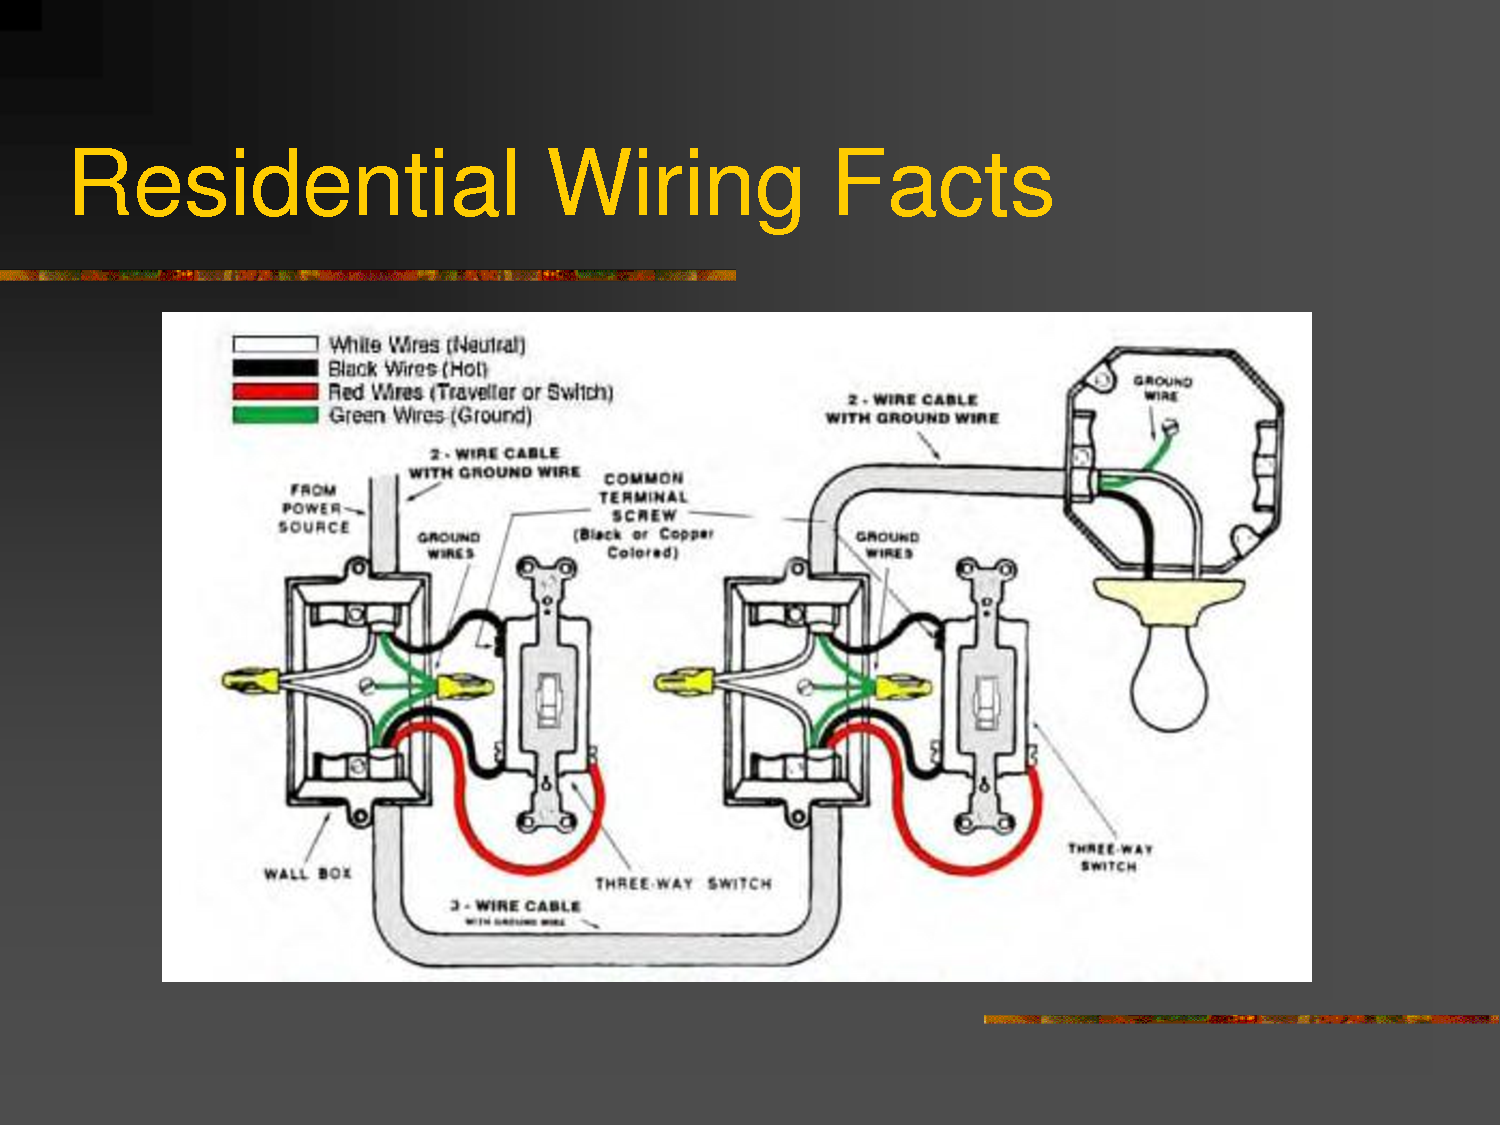 hight resolution of residential ac wiring diagram data schema house ac wiring diagram residential ac wiring